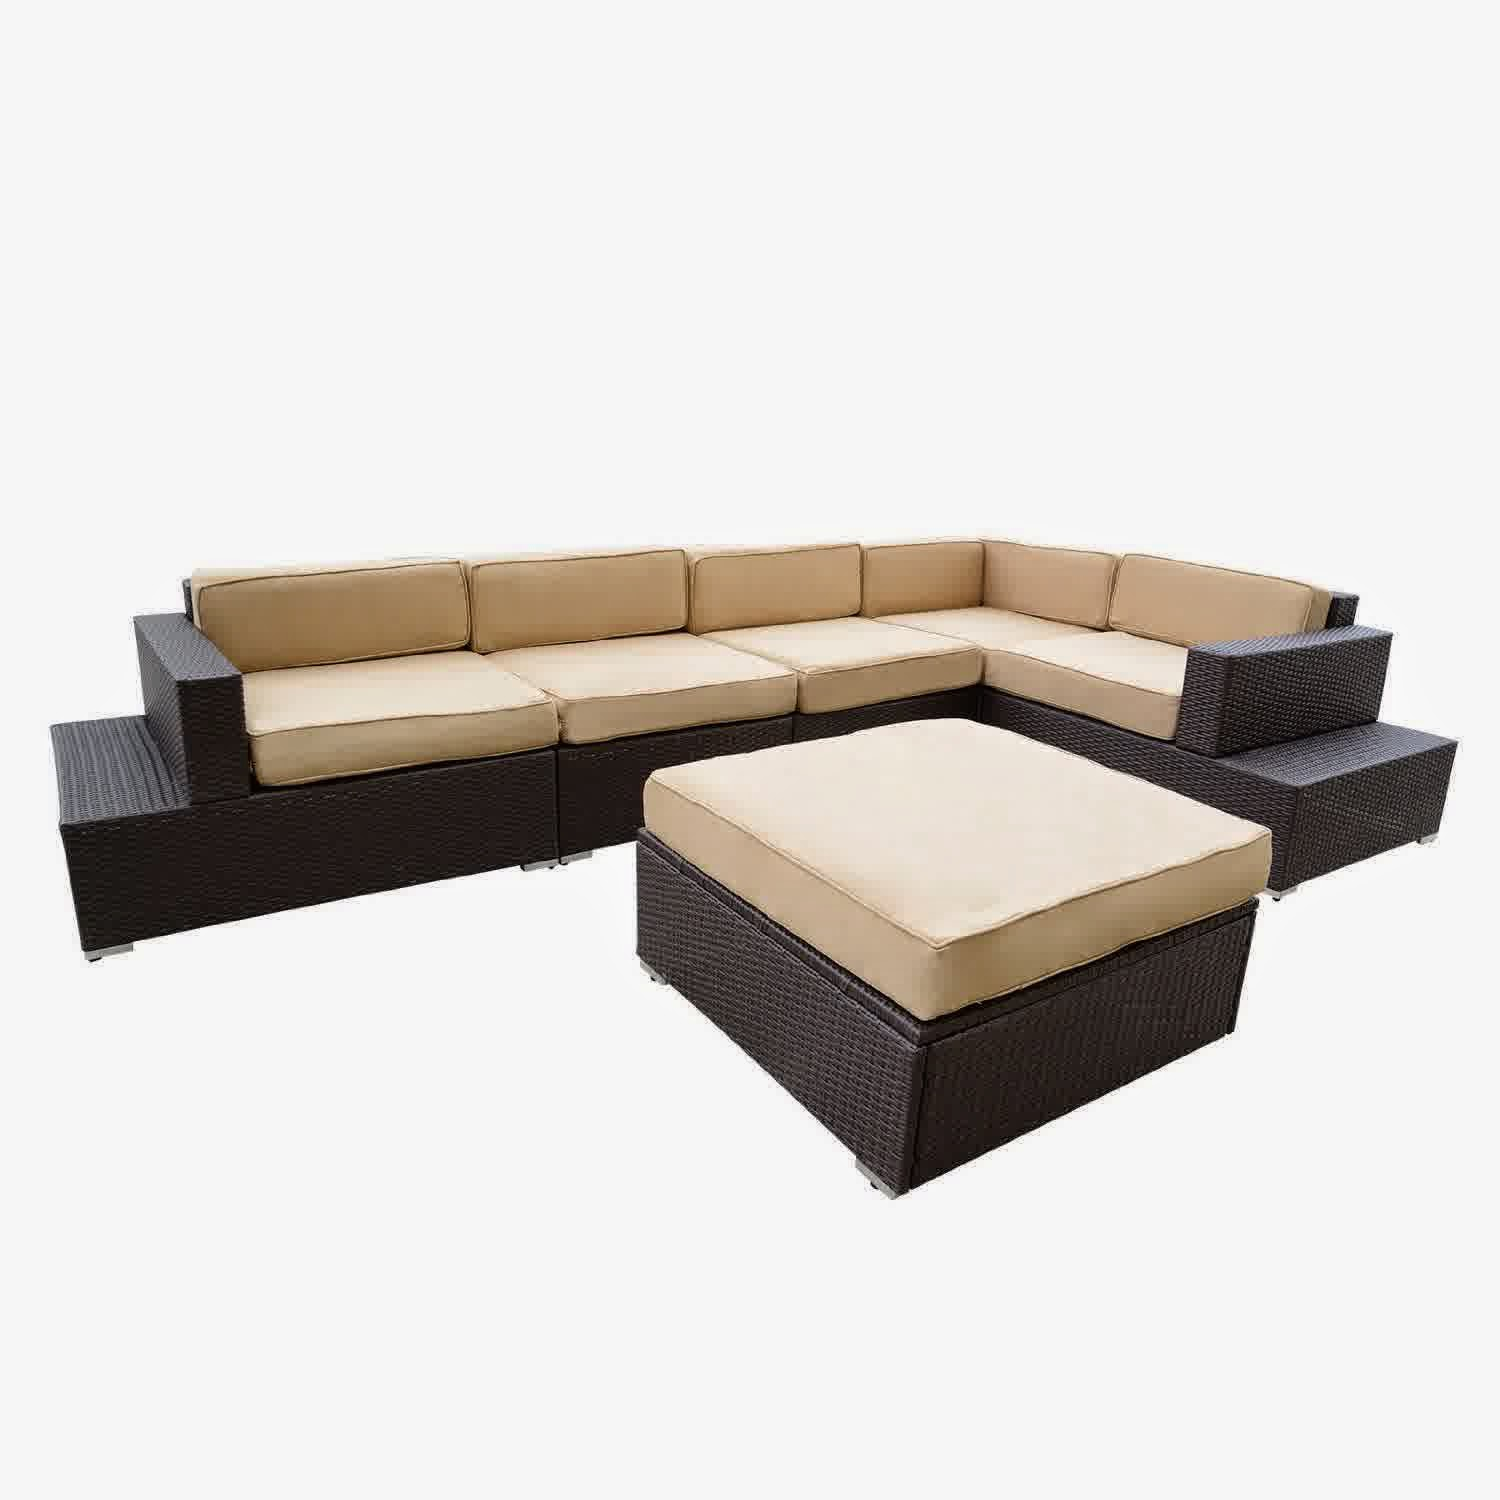 Big Sale Discount 50% Outdoor Patio Rattan Sofa Wicker Sectional Furniture So